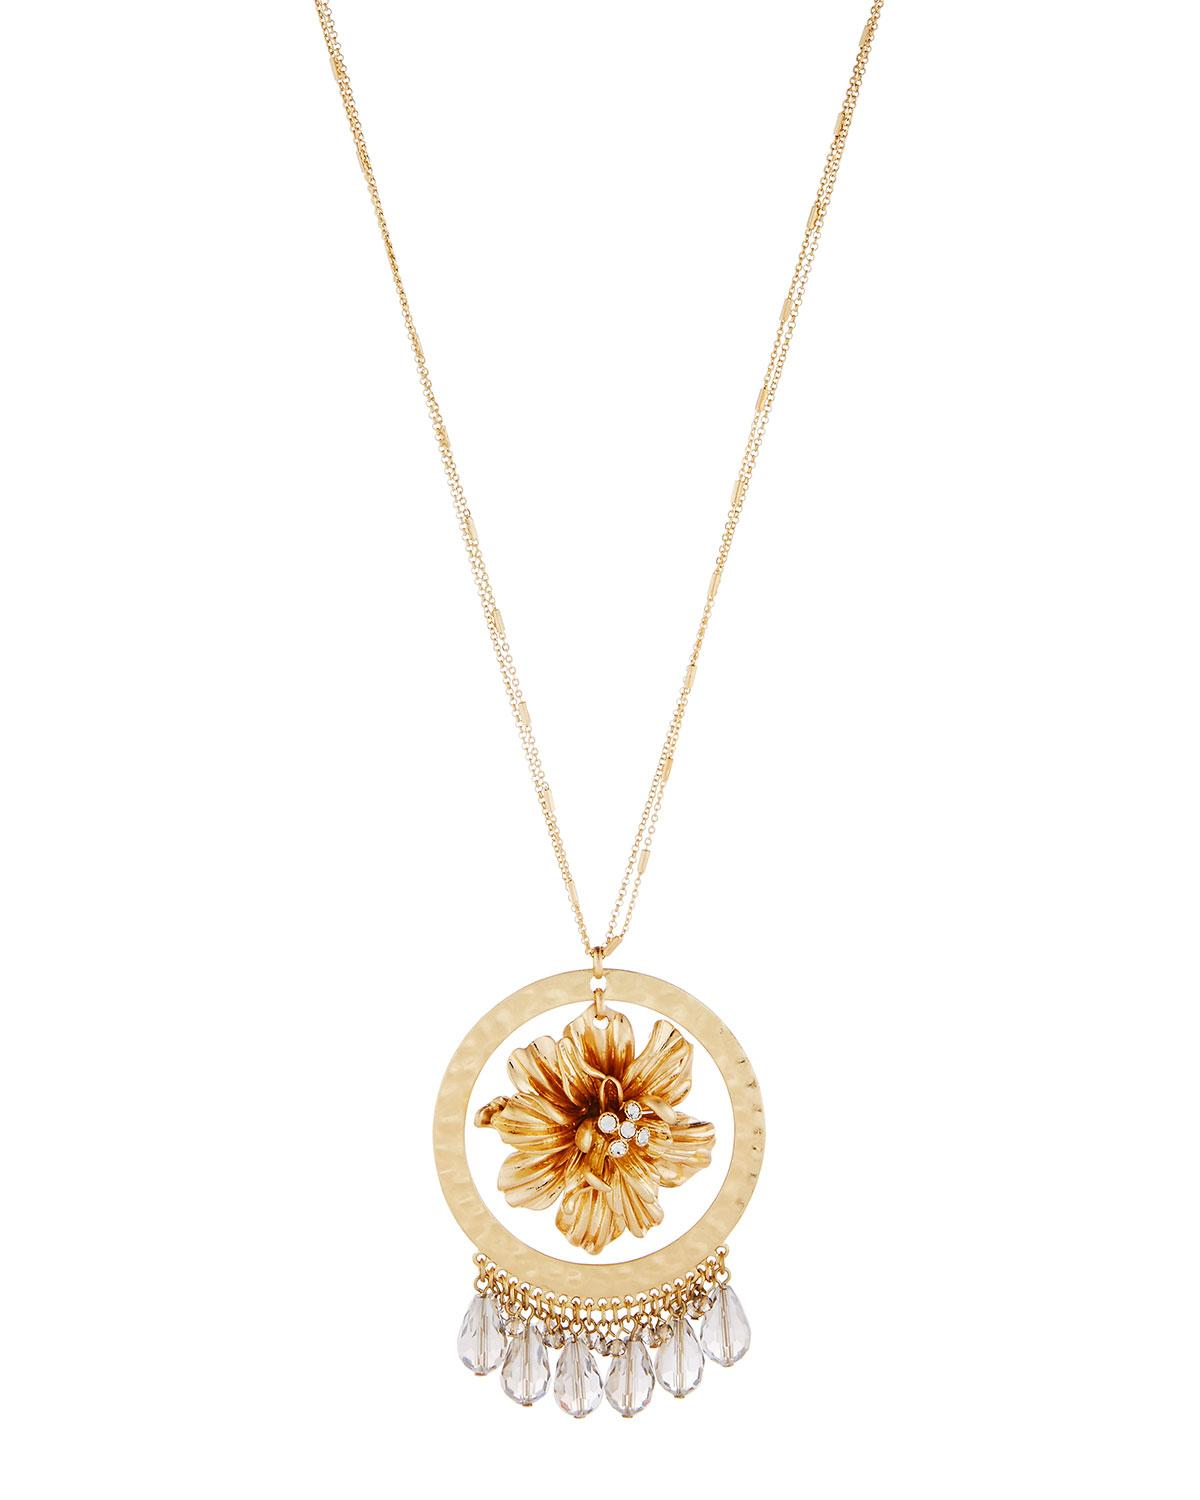 Find great deals on eBay for long flower necklace. Shop with confidence.